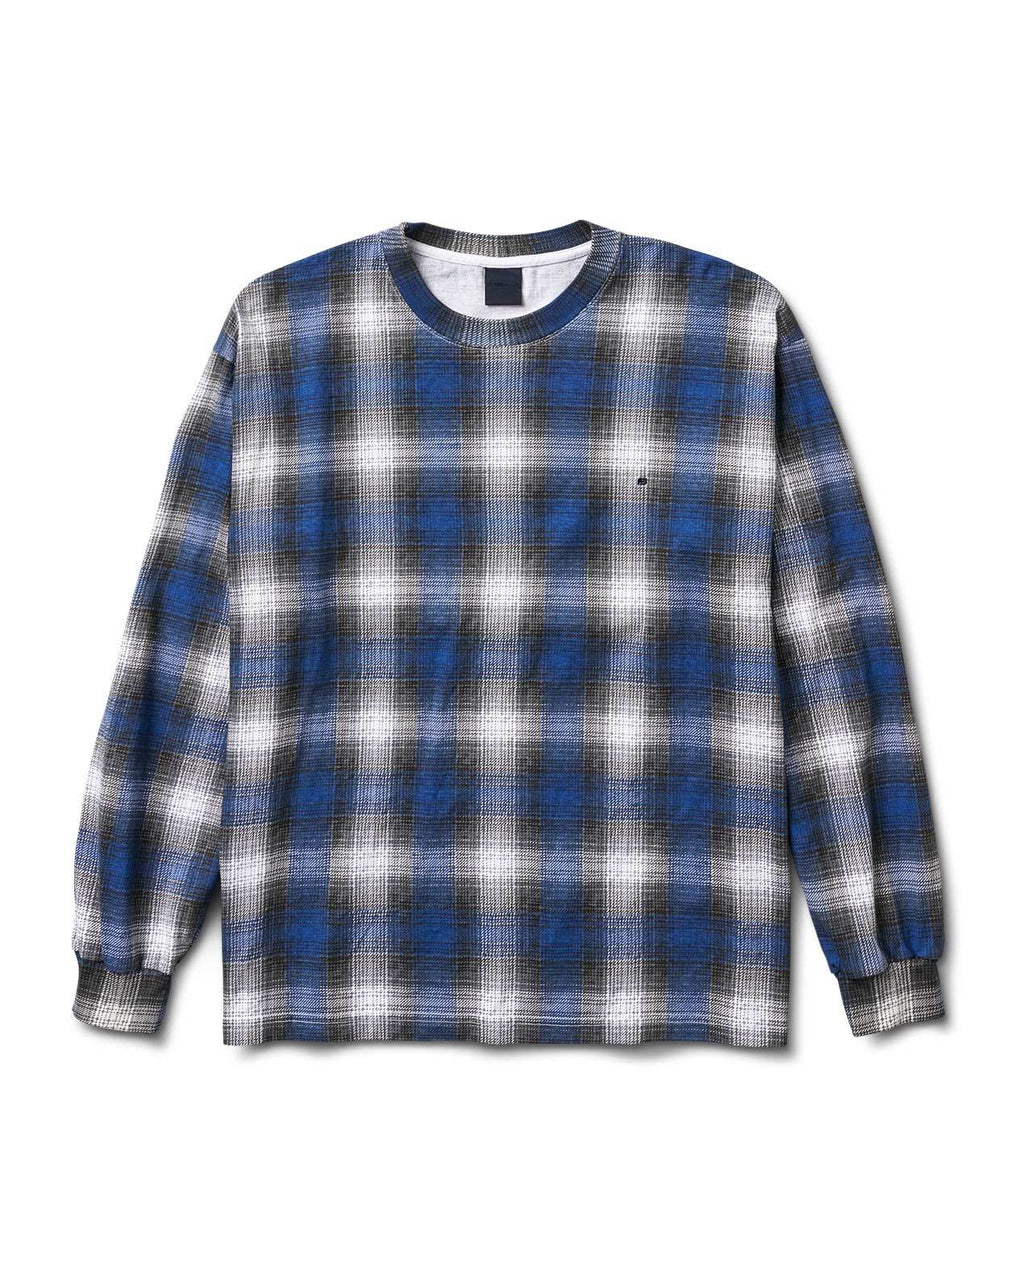 SHADOWS LONG SLEEVE SHIRT